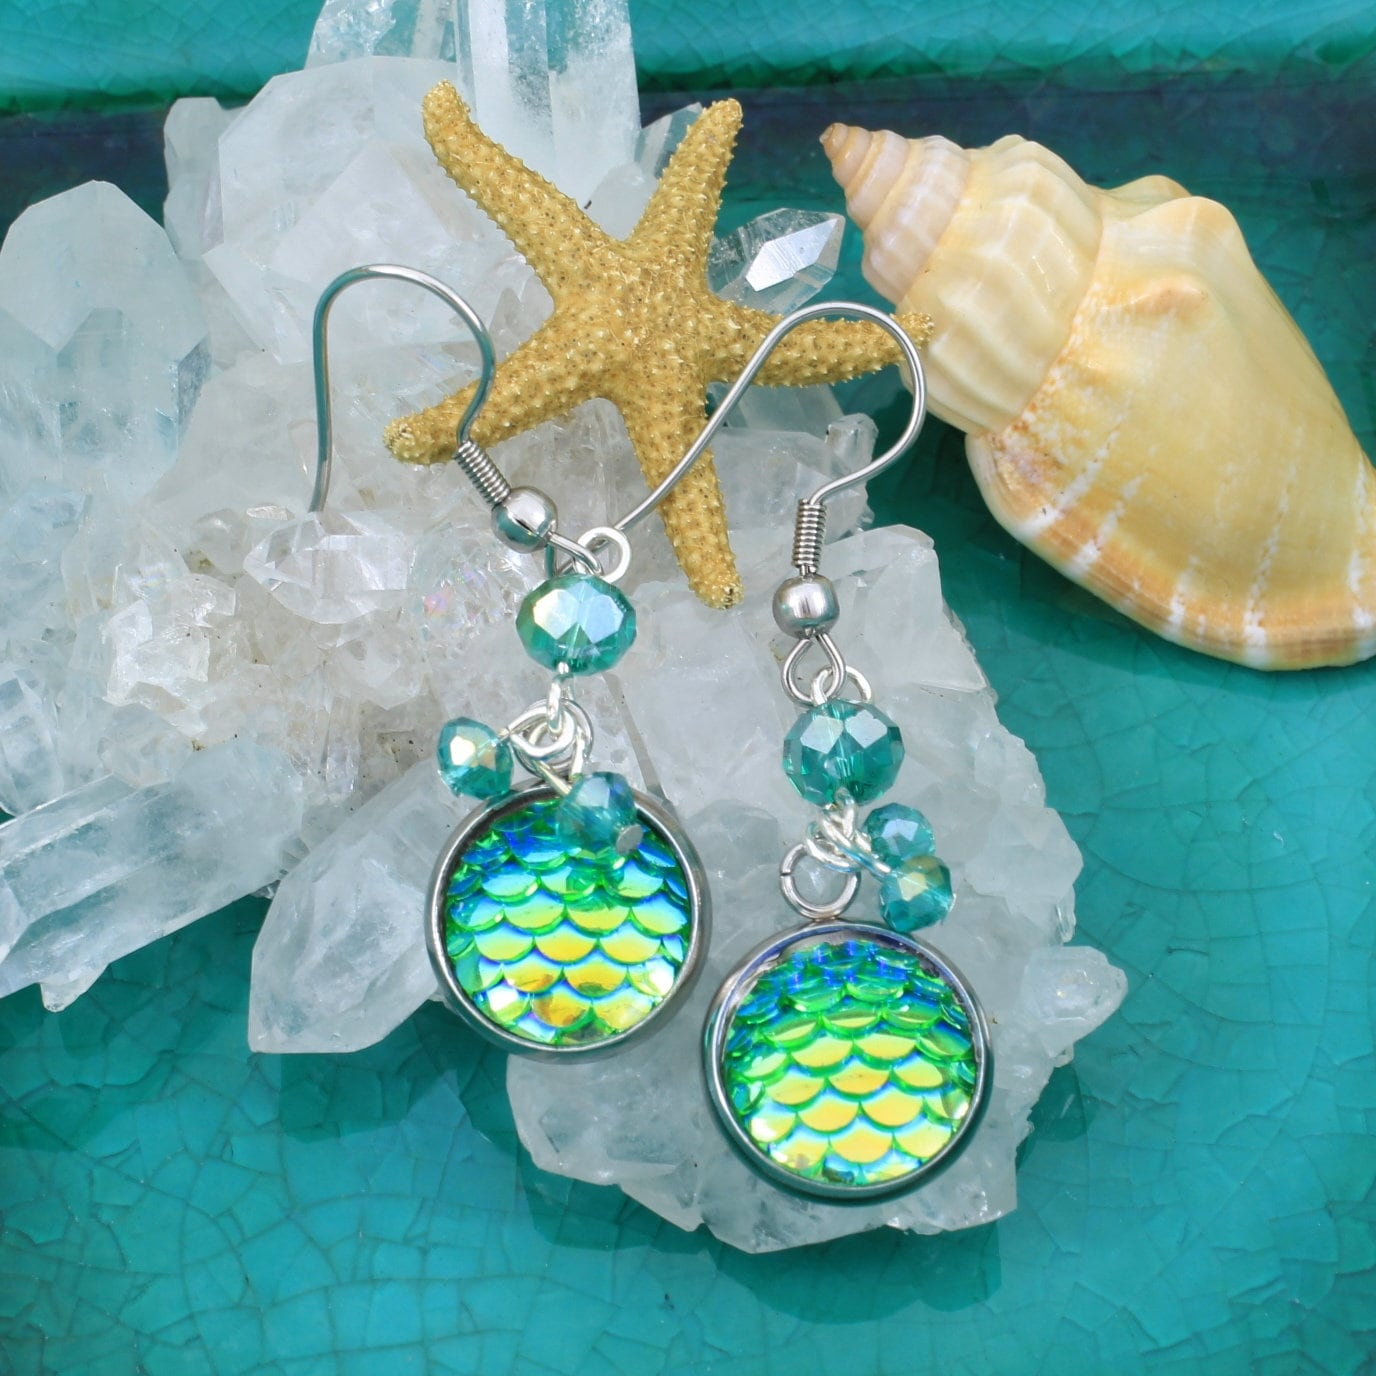 Mermaid,earrings,,dragon,scale,earrings,Jewelry,Earrings,mermaid_earrings,dragonscale_earrings,mermaid_jewelry,fantasy_jewelry,green_earrings,blue_earrings,little_girl_earrings,cosplay_earrings,one_of_a_kind,handmade_jewelry,ocean_theme,Arial_jewelry,Stainless steel